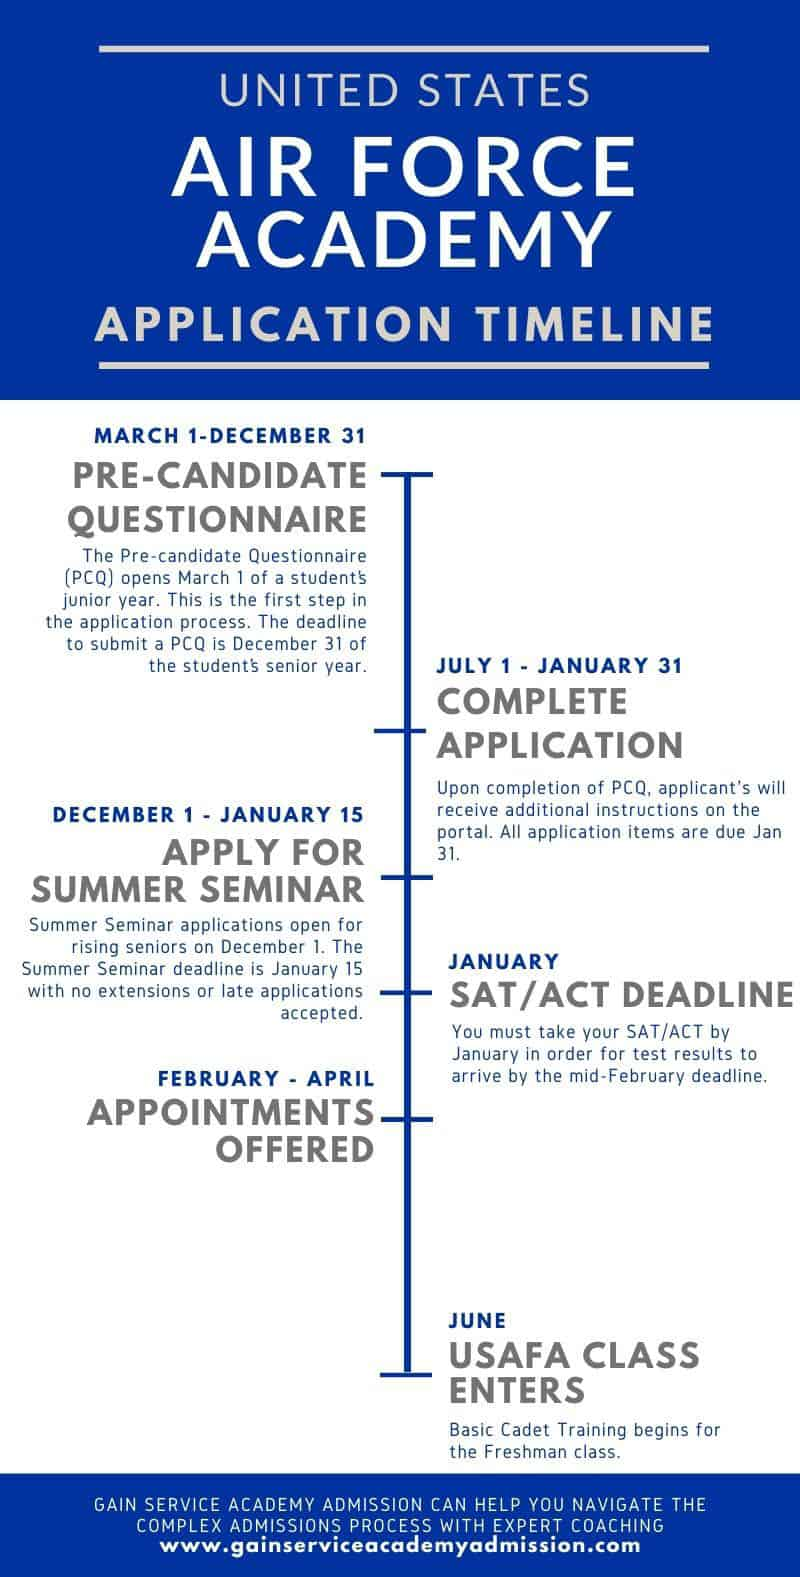 Infographic of the Air Force Academy Application Timeline